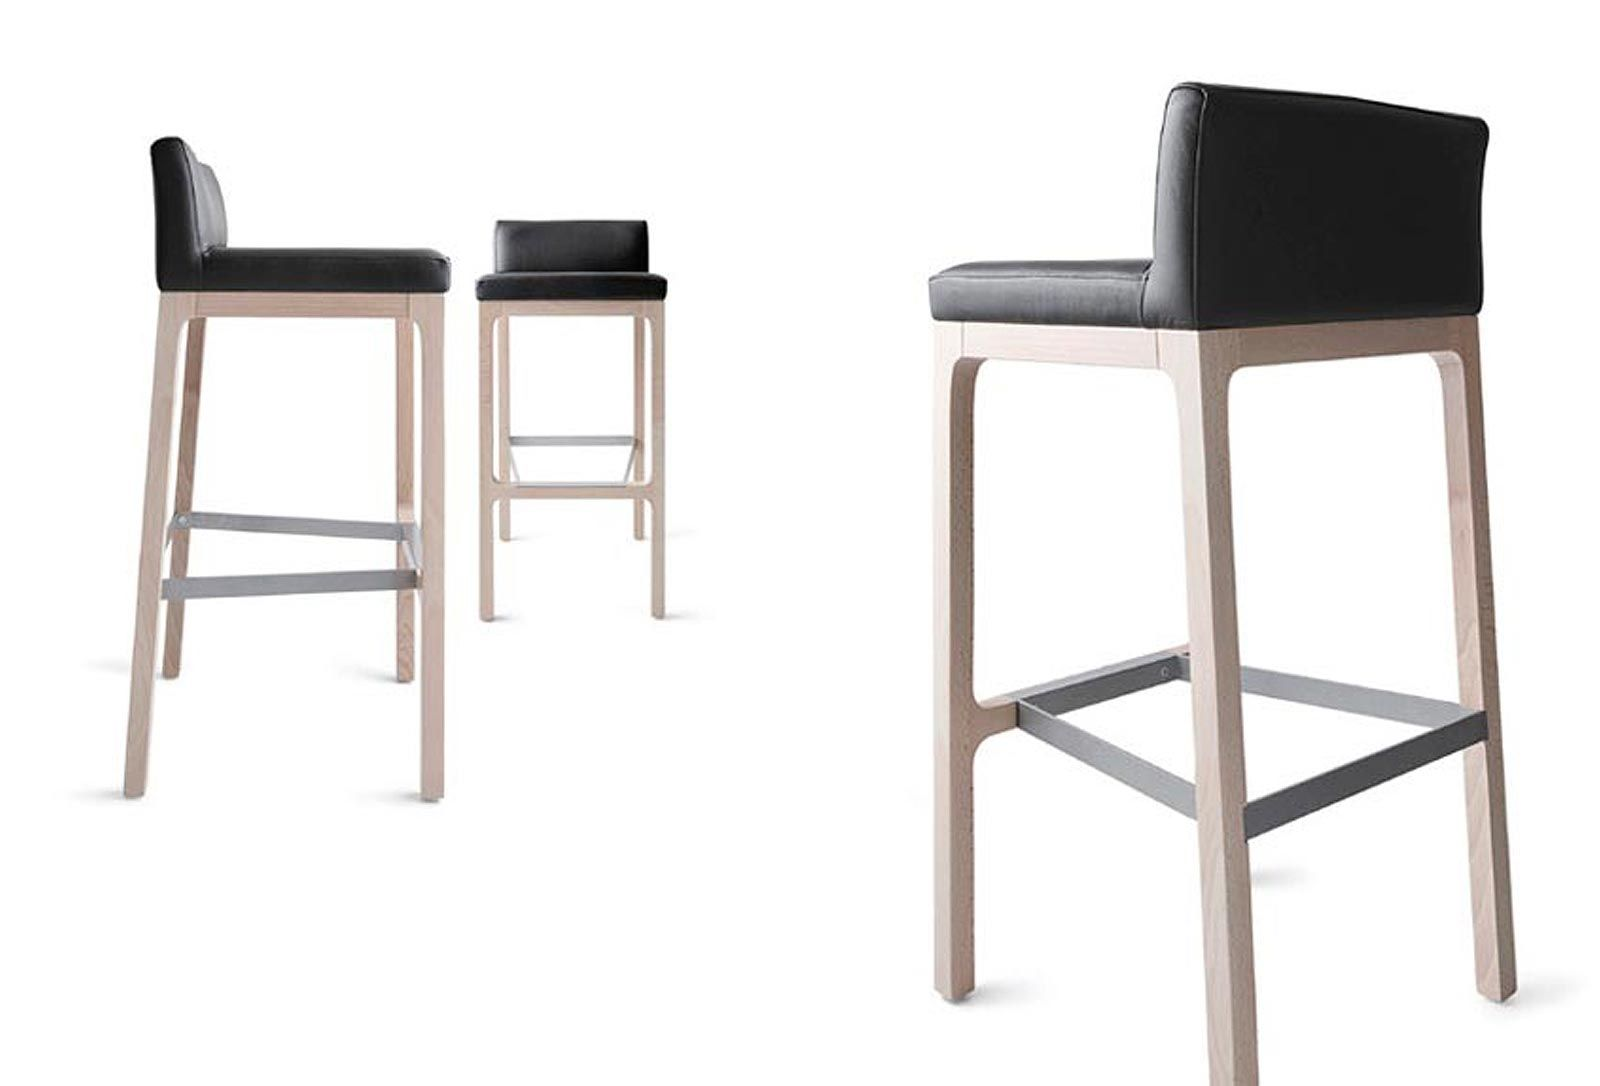 contemporary bar stool  solid wood  leather  fabric  flux by  -  contemporary bar stool  solid wood  leather  fabric flux by emilionanni bross italia